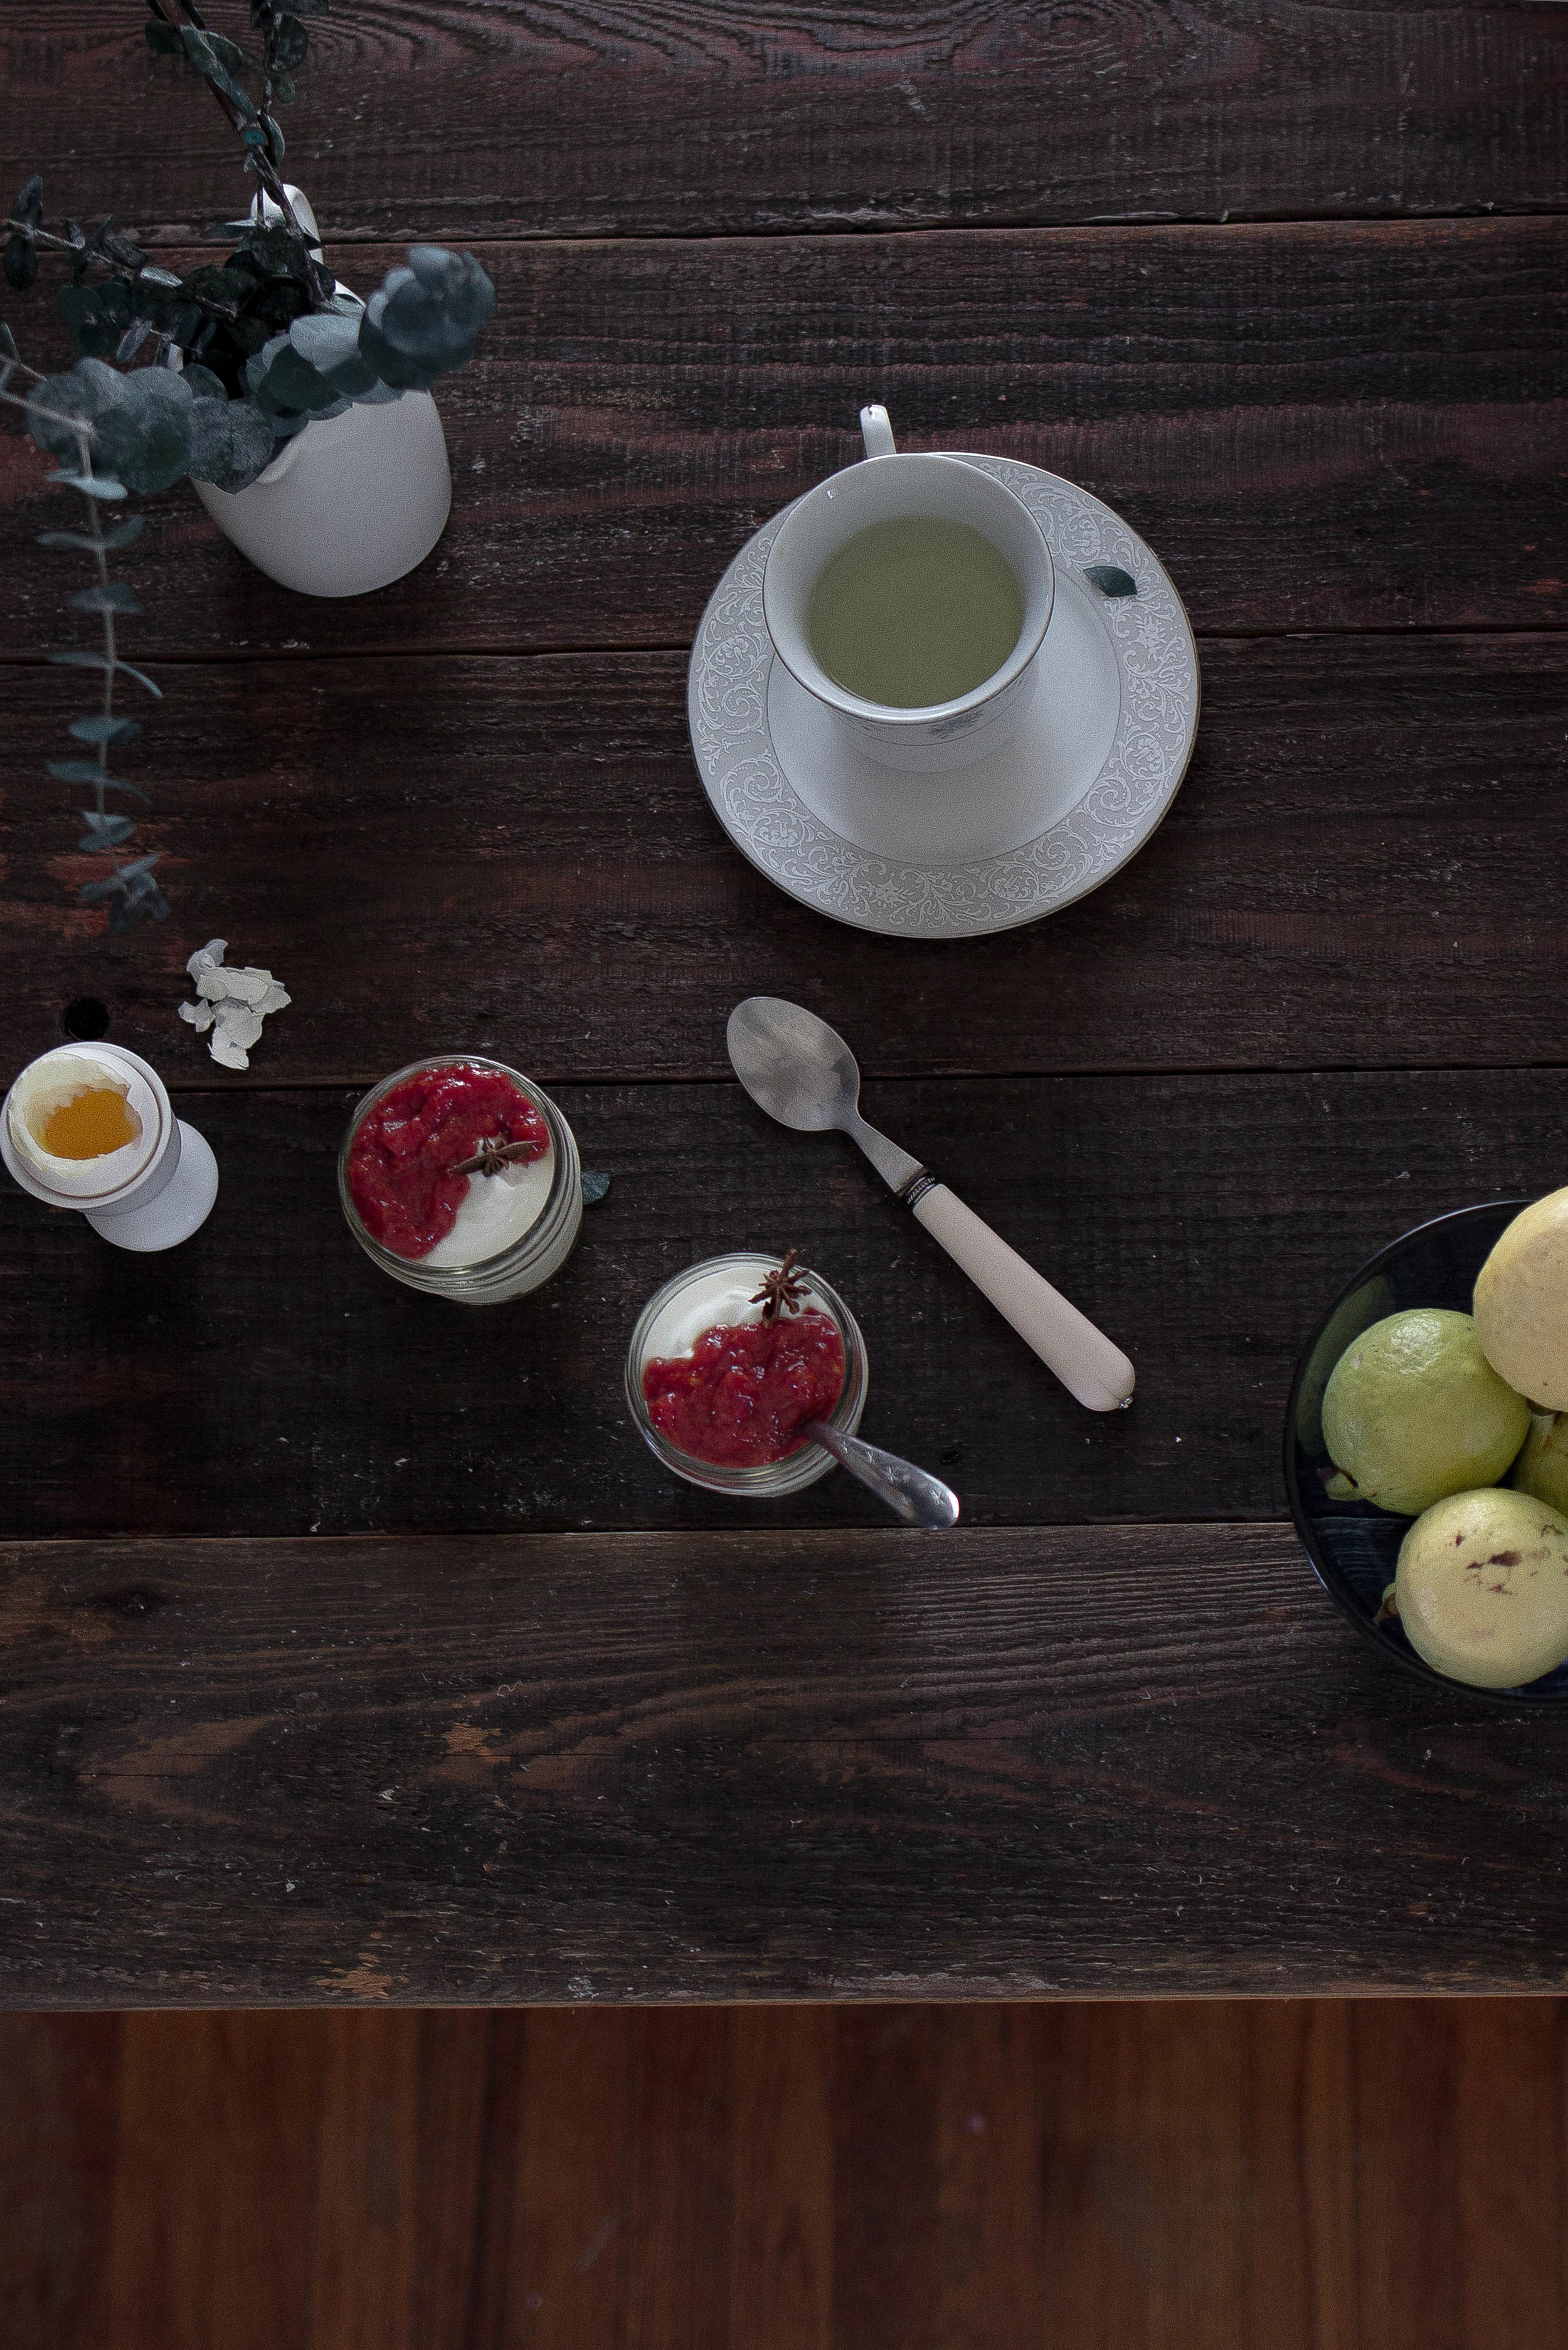 Guava anise preserves recipe and afternoon tea | by fit for the soul